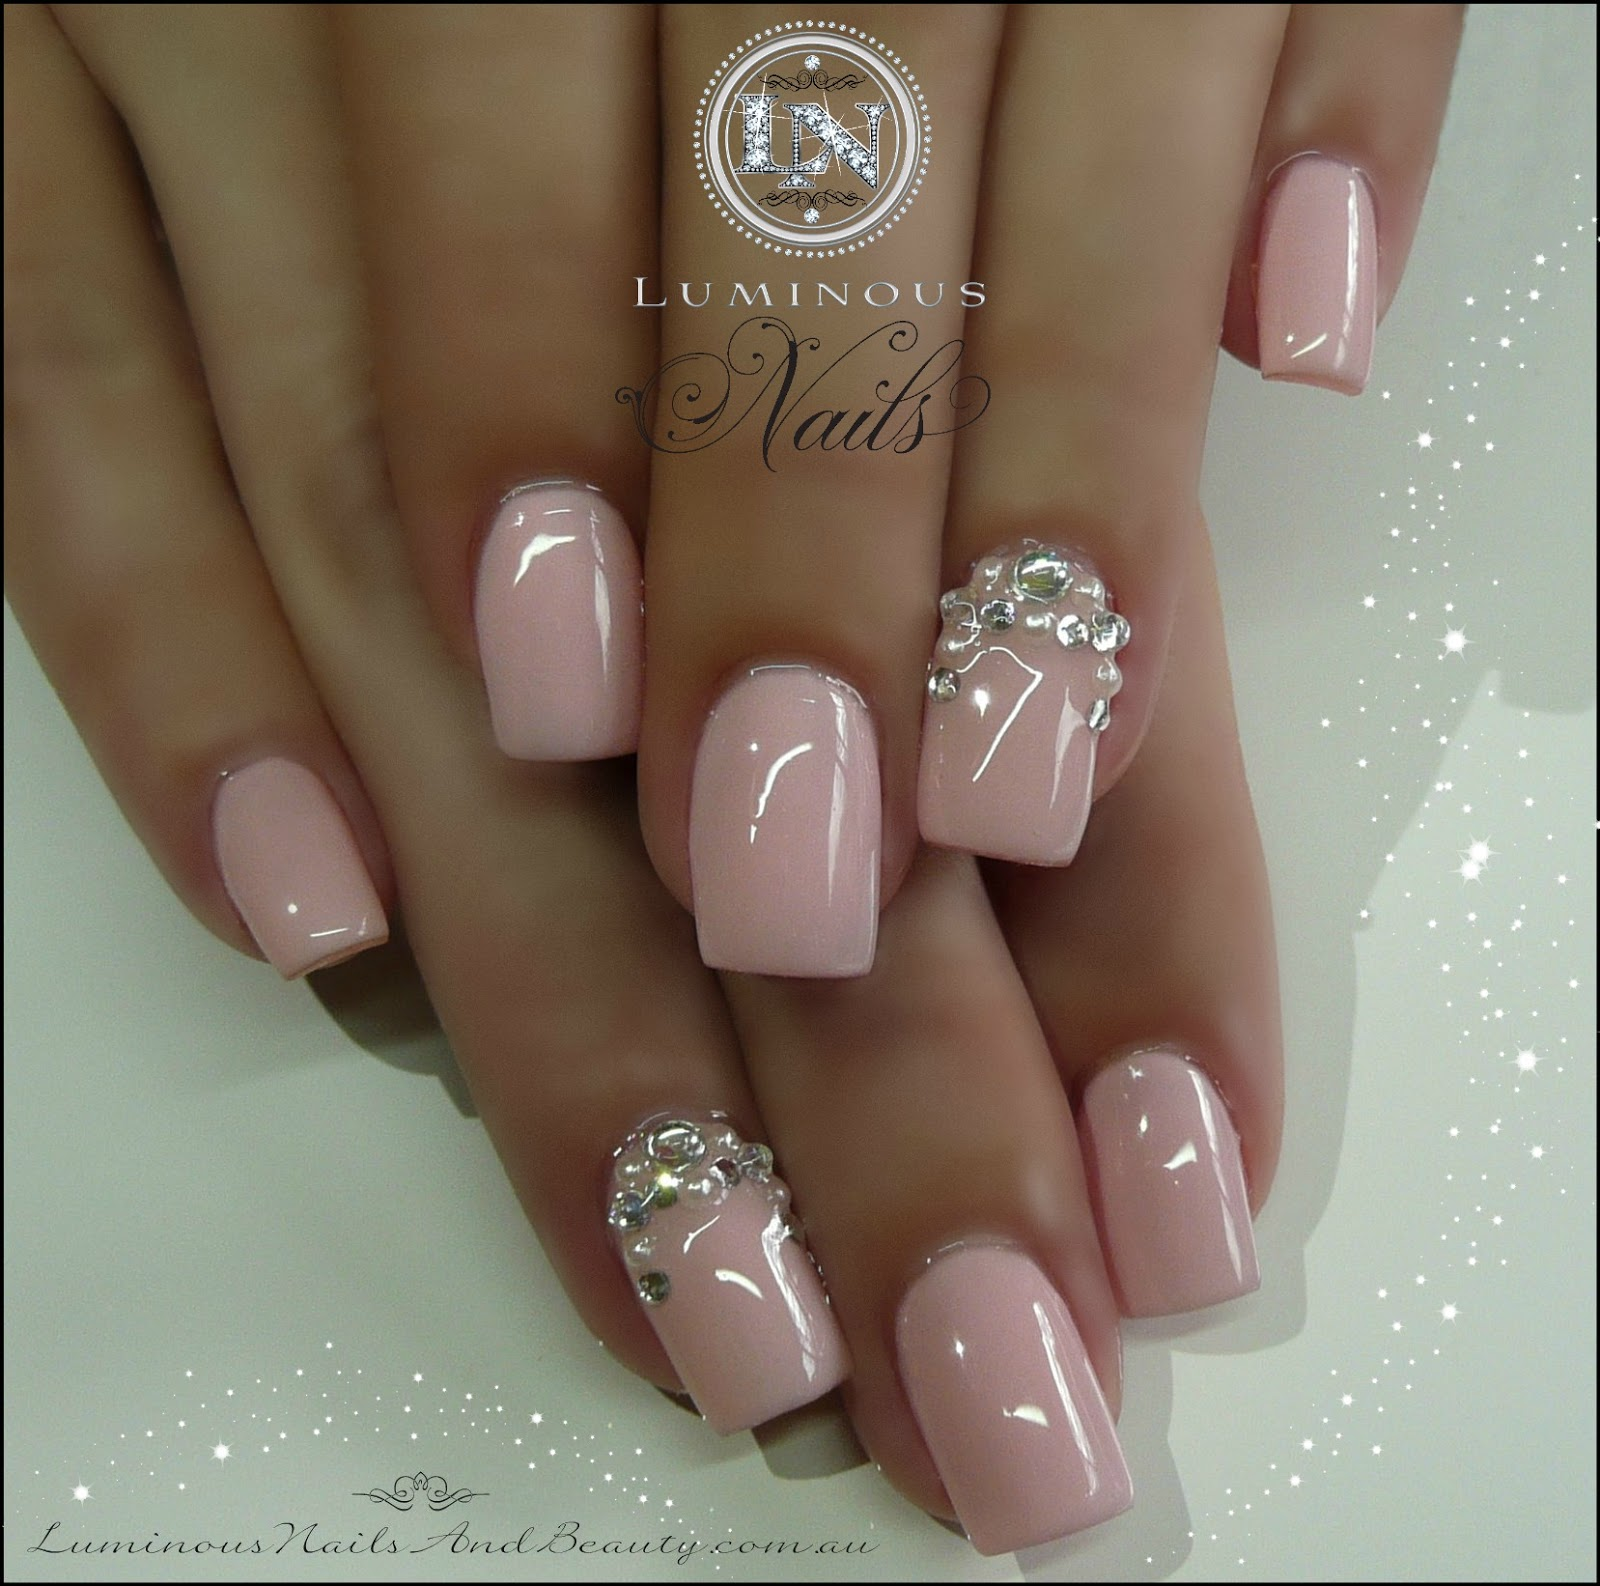 Luminous+Nails+And+Beauty,+Gold+Coast+Queensland.+Acrylic+&+Gel+Nails ...